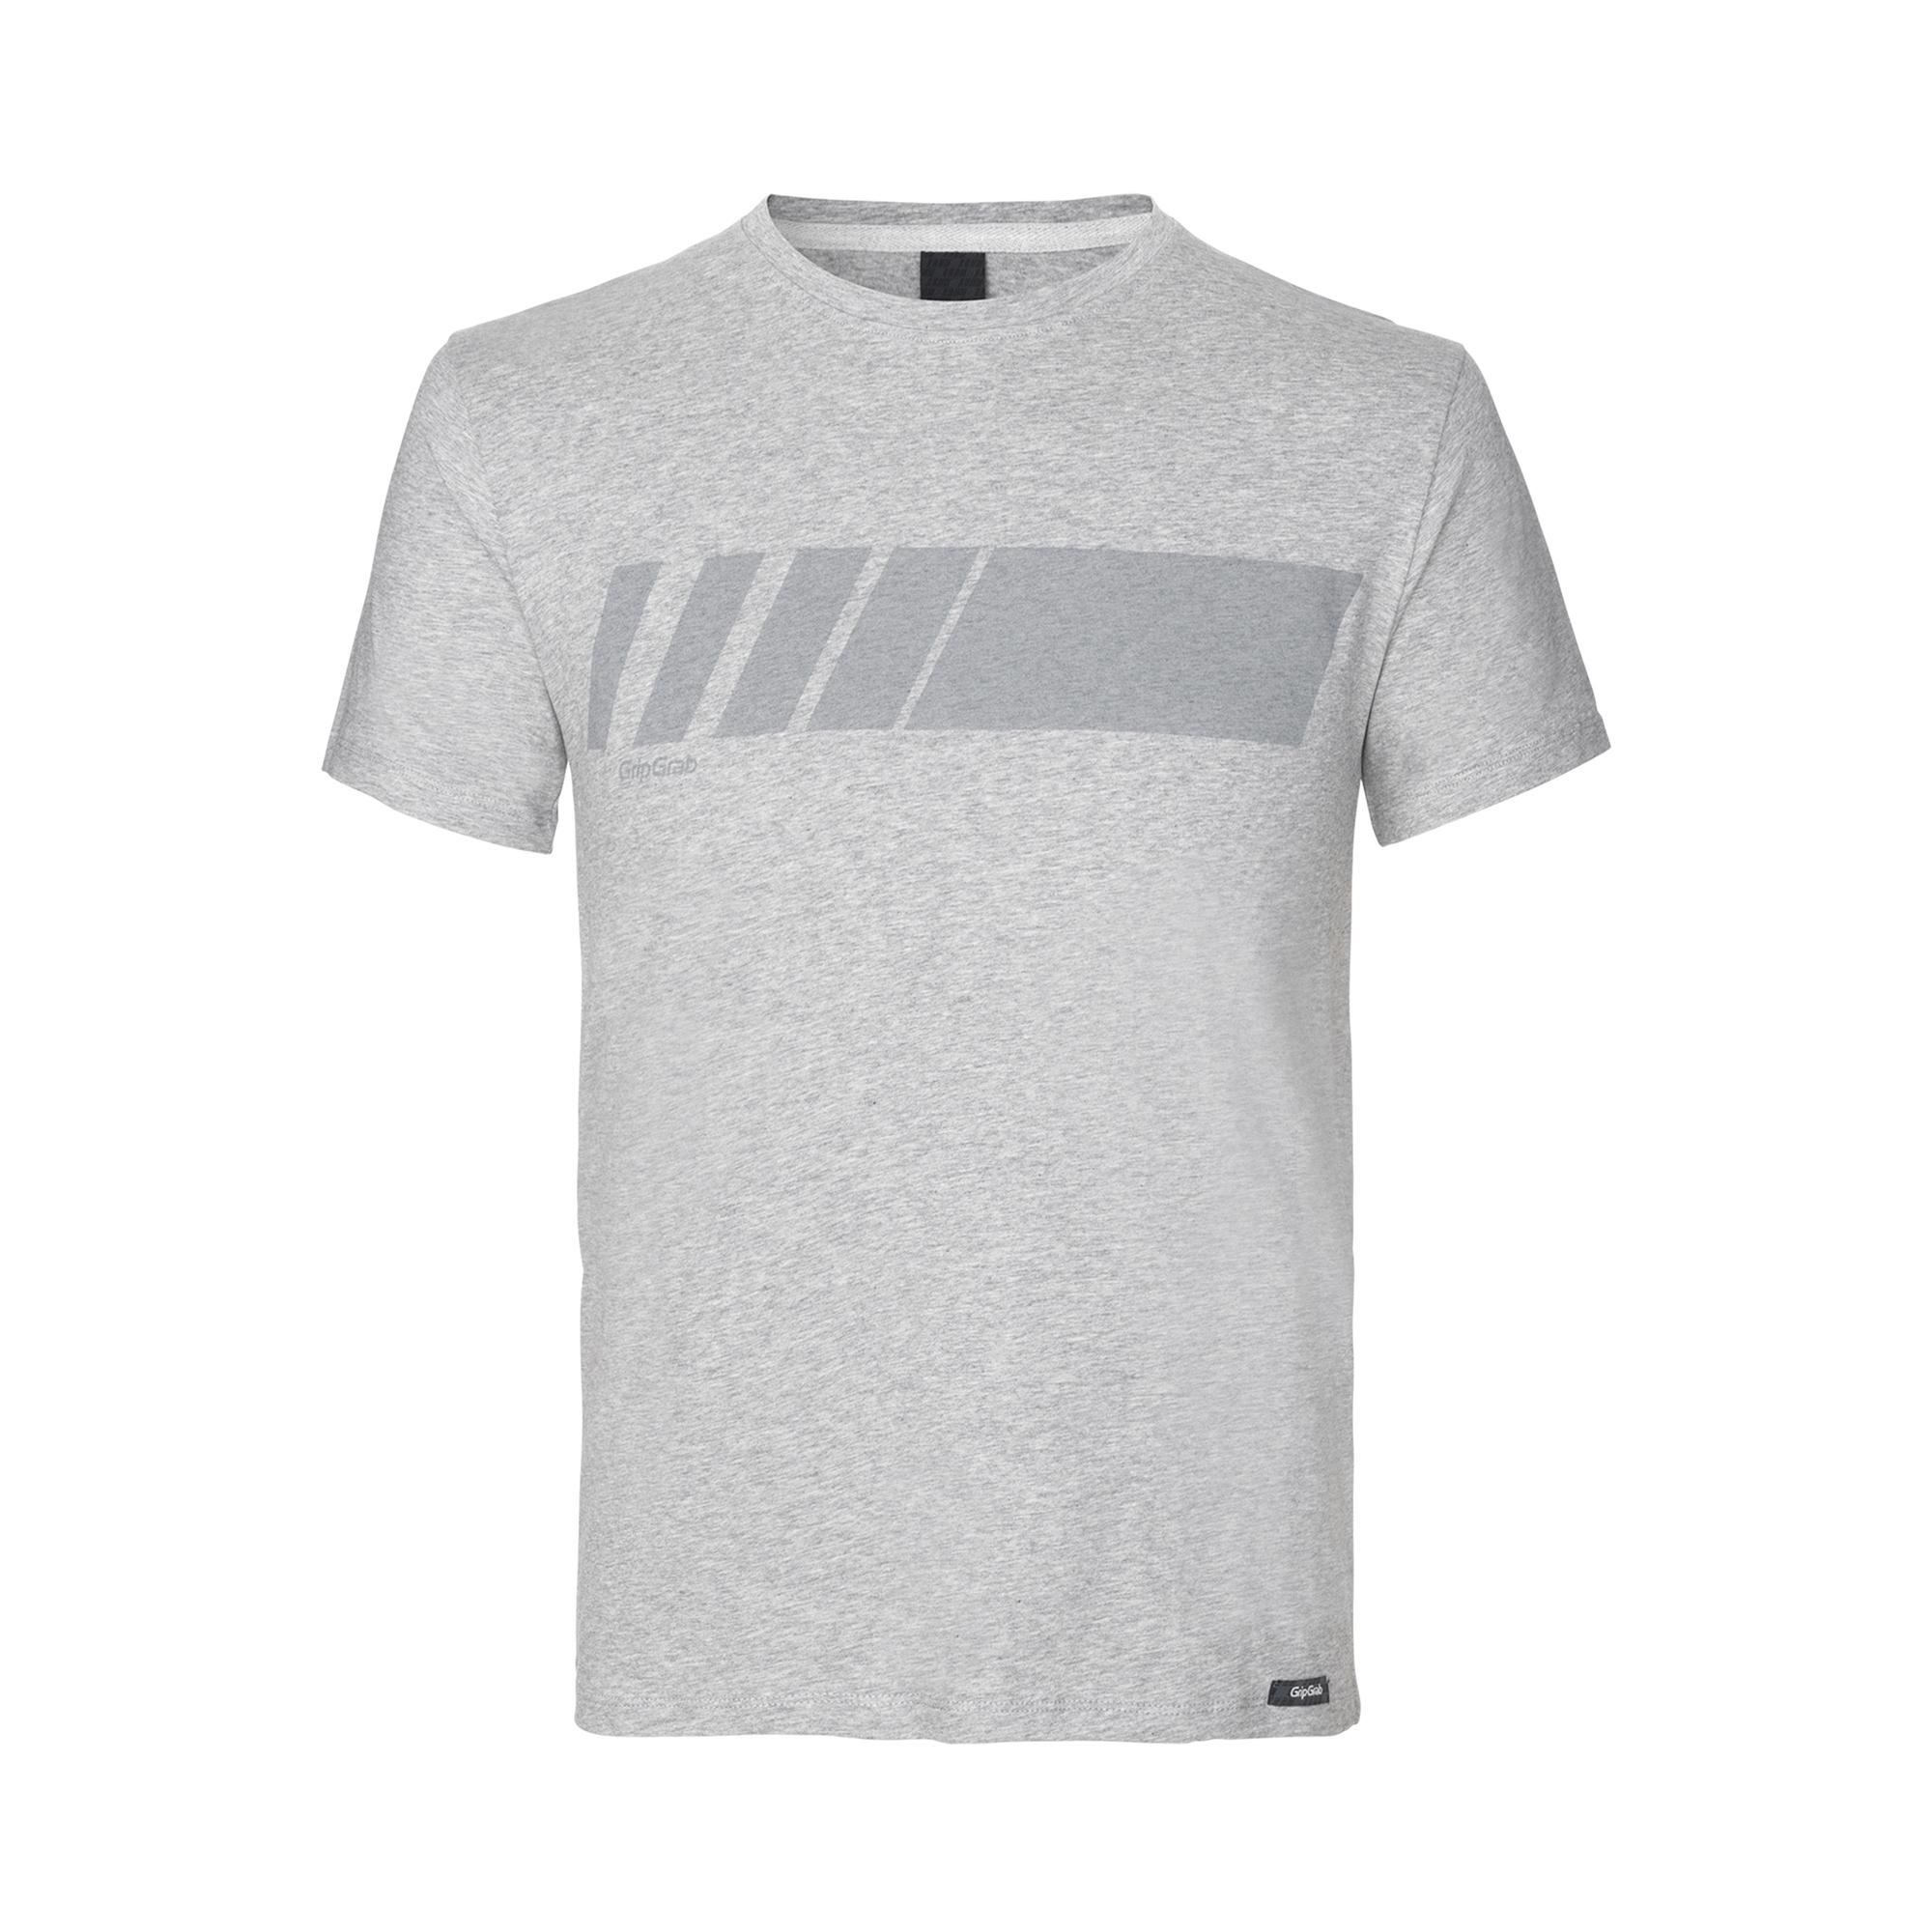 GripGrab Casual T-Shirt Unisex Grijs - Racing Stripe Short Sleeve Organic Cotton T-Shirt Grey